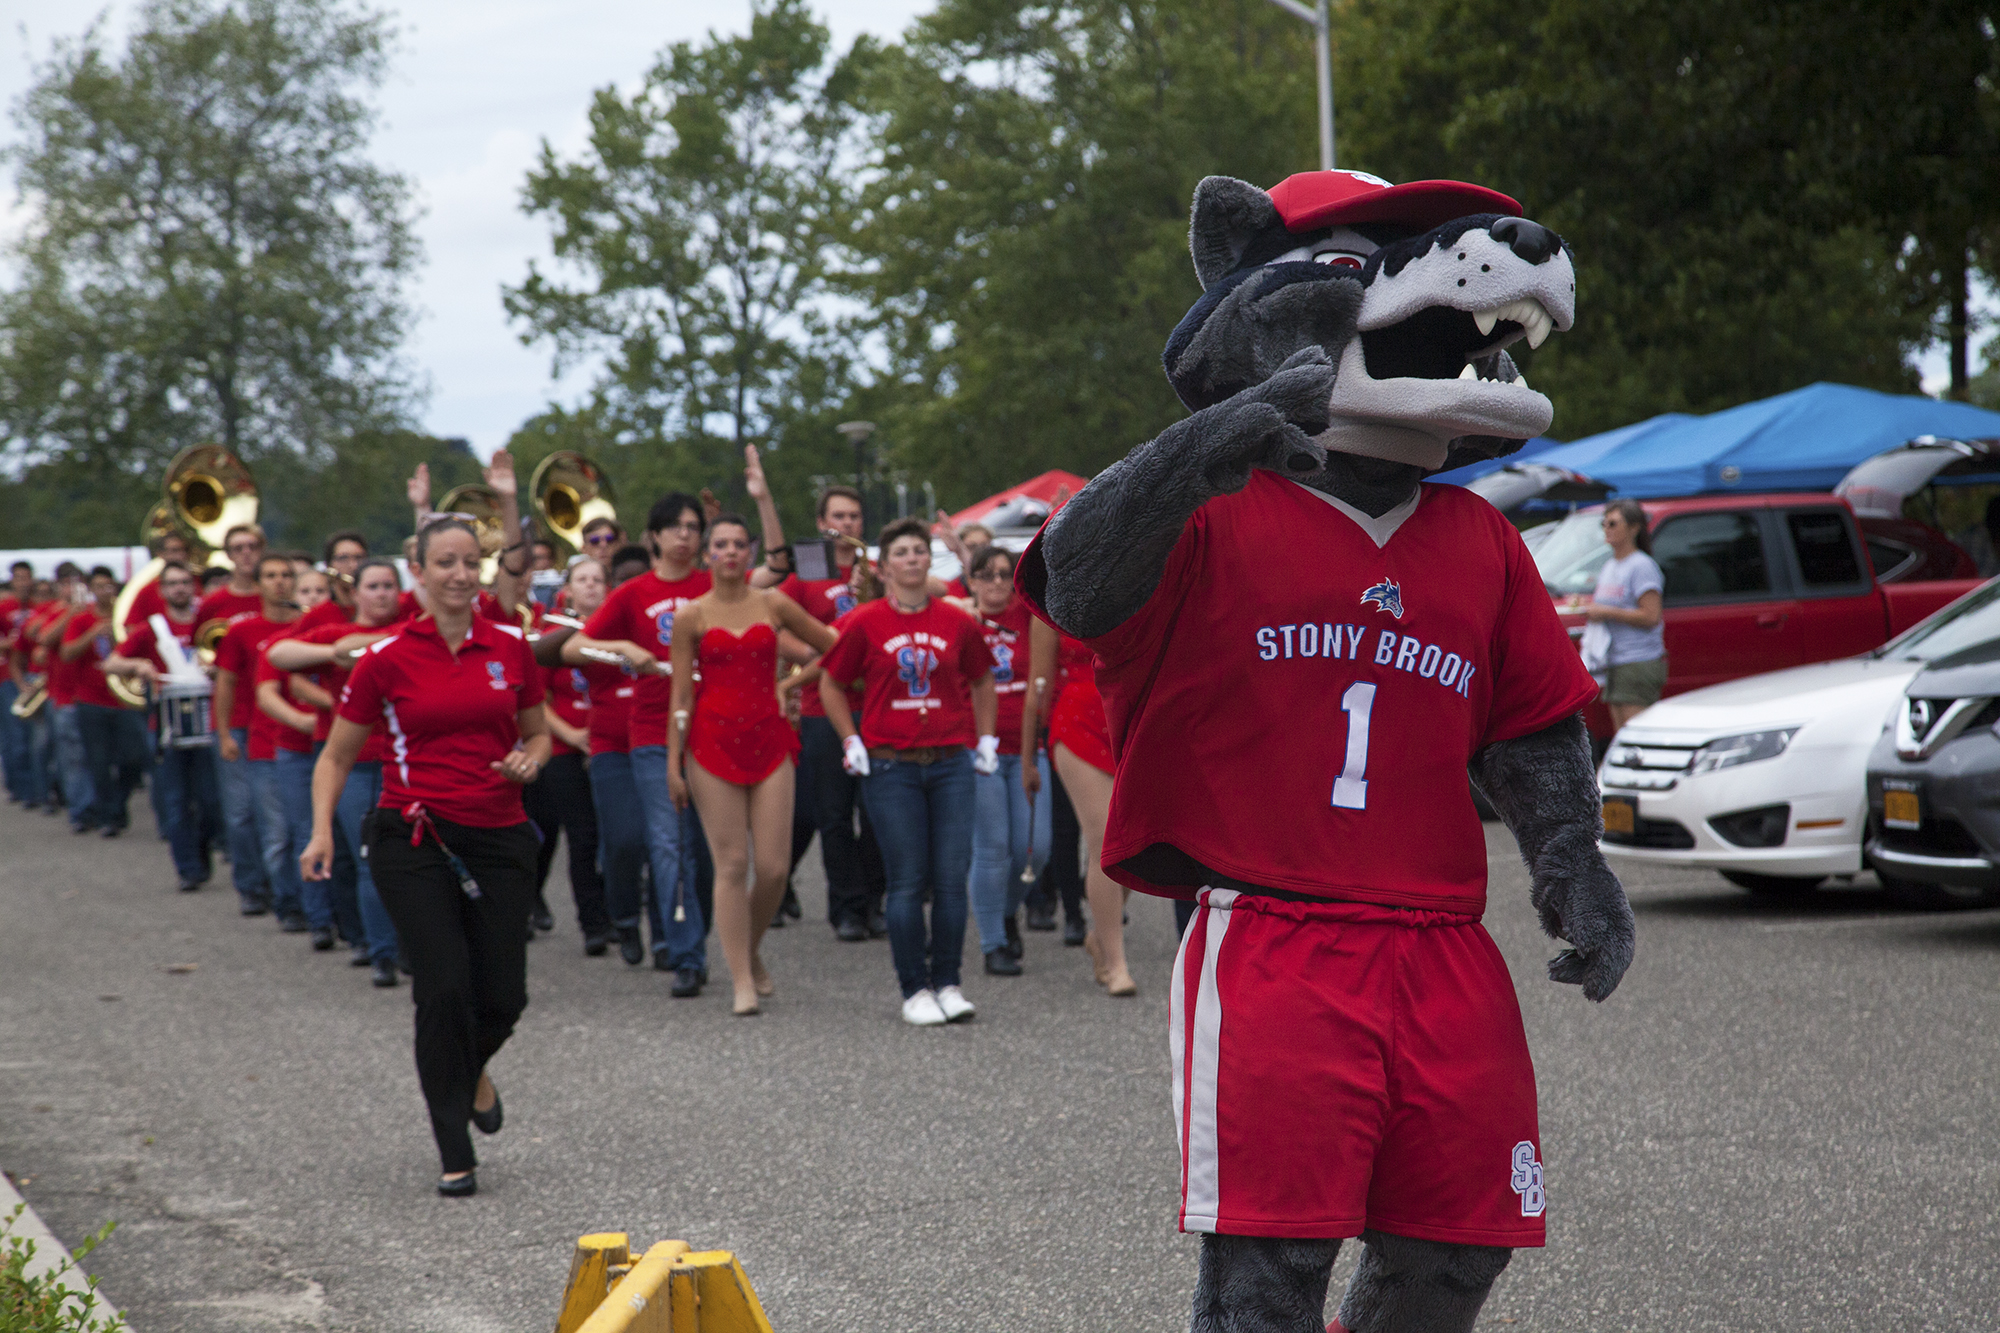 Wolfie leading the Spirit of Stony Brook marching band from